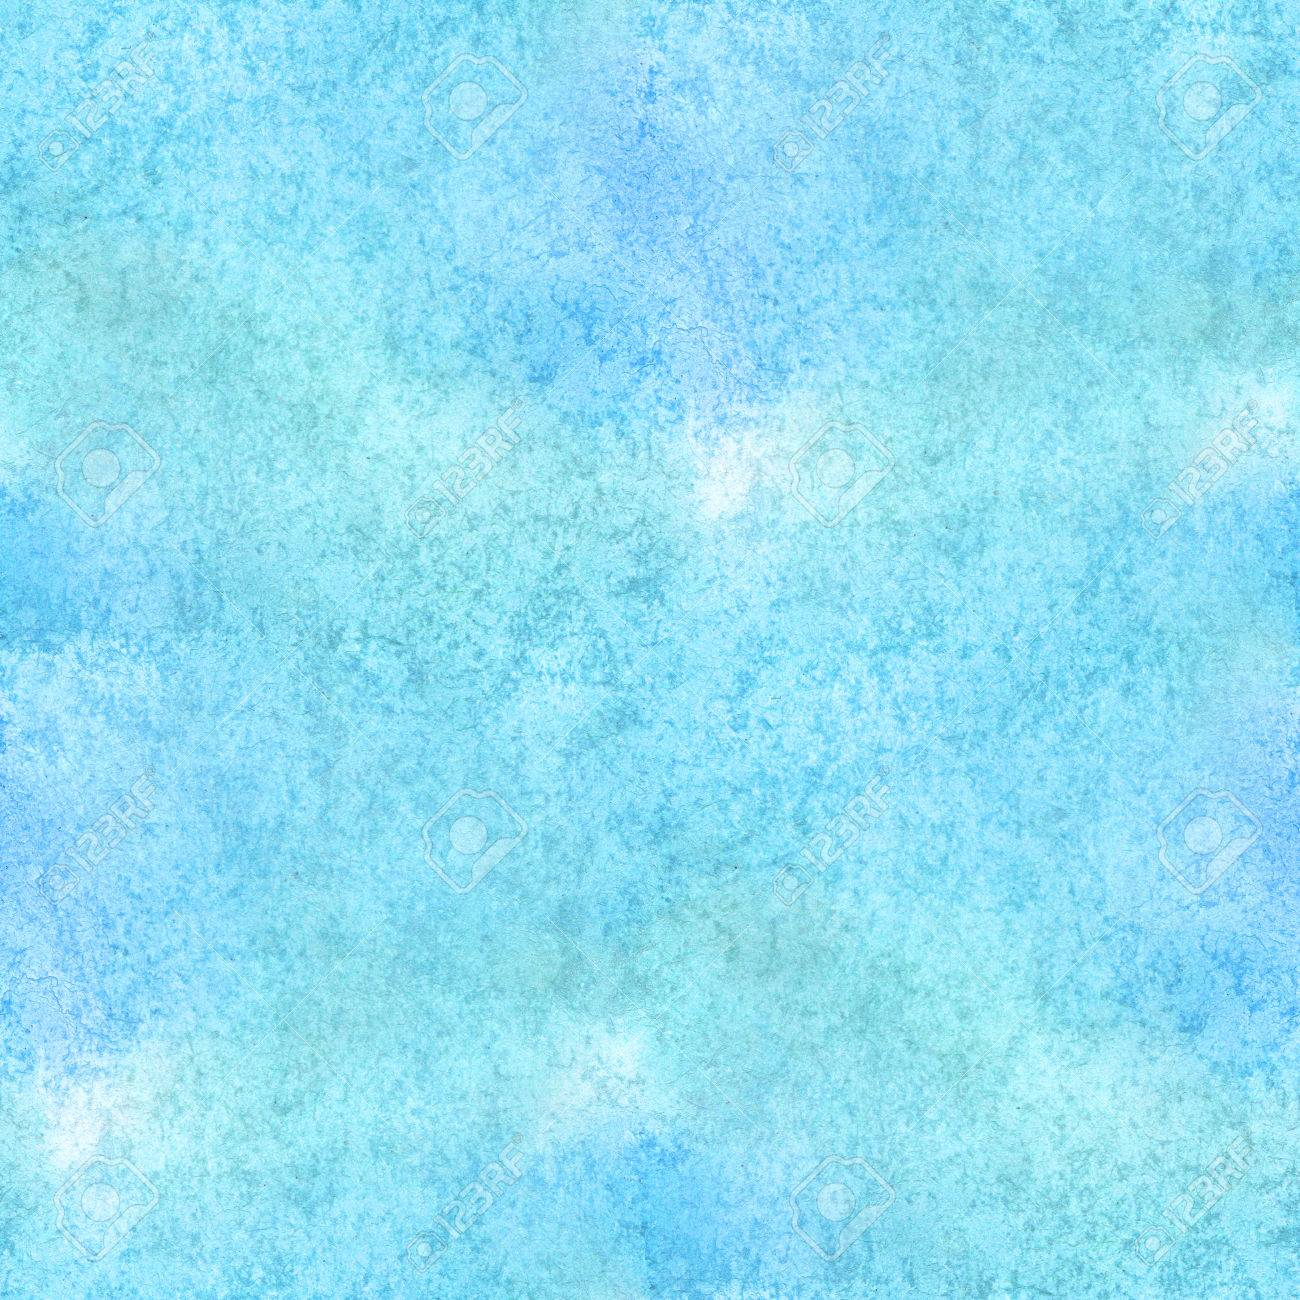 Seamless Watercolor Background Blue Abstract Pattern Texture